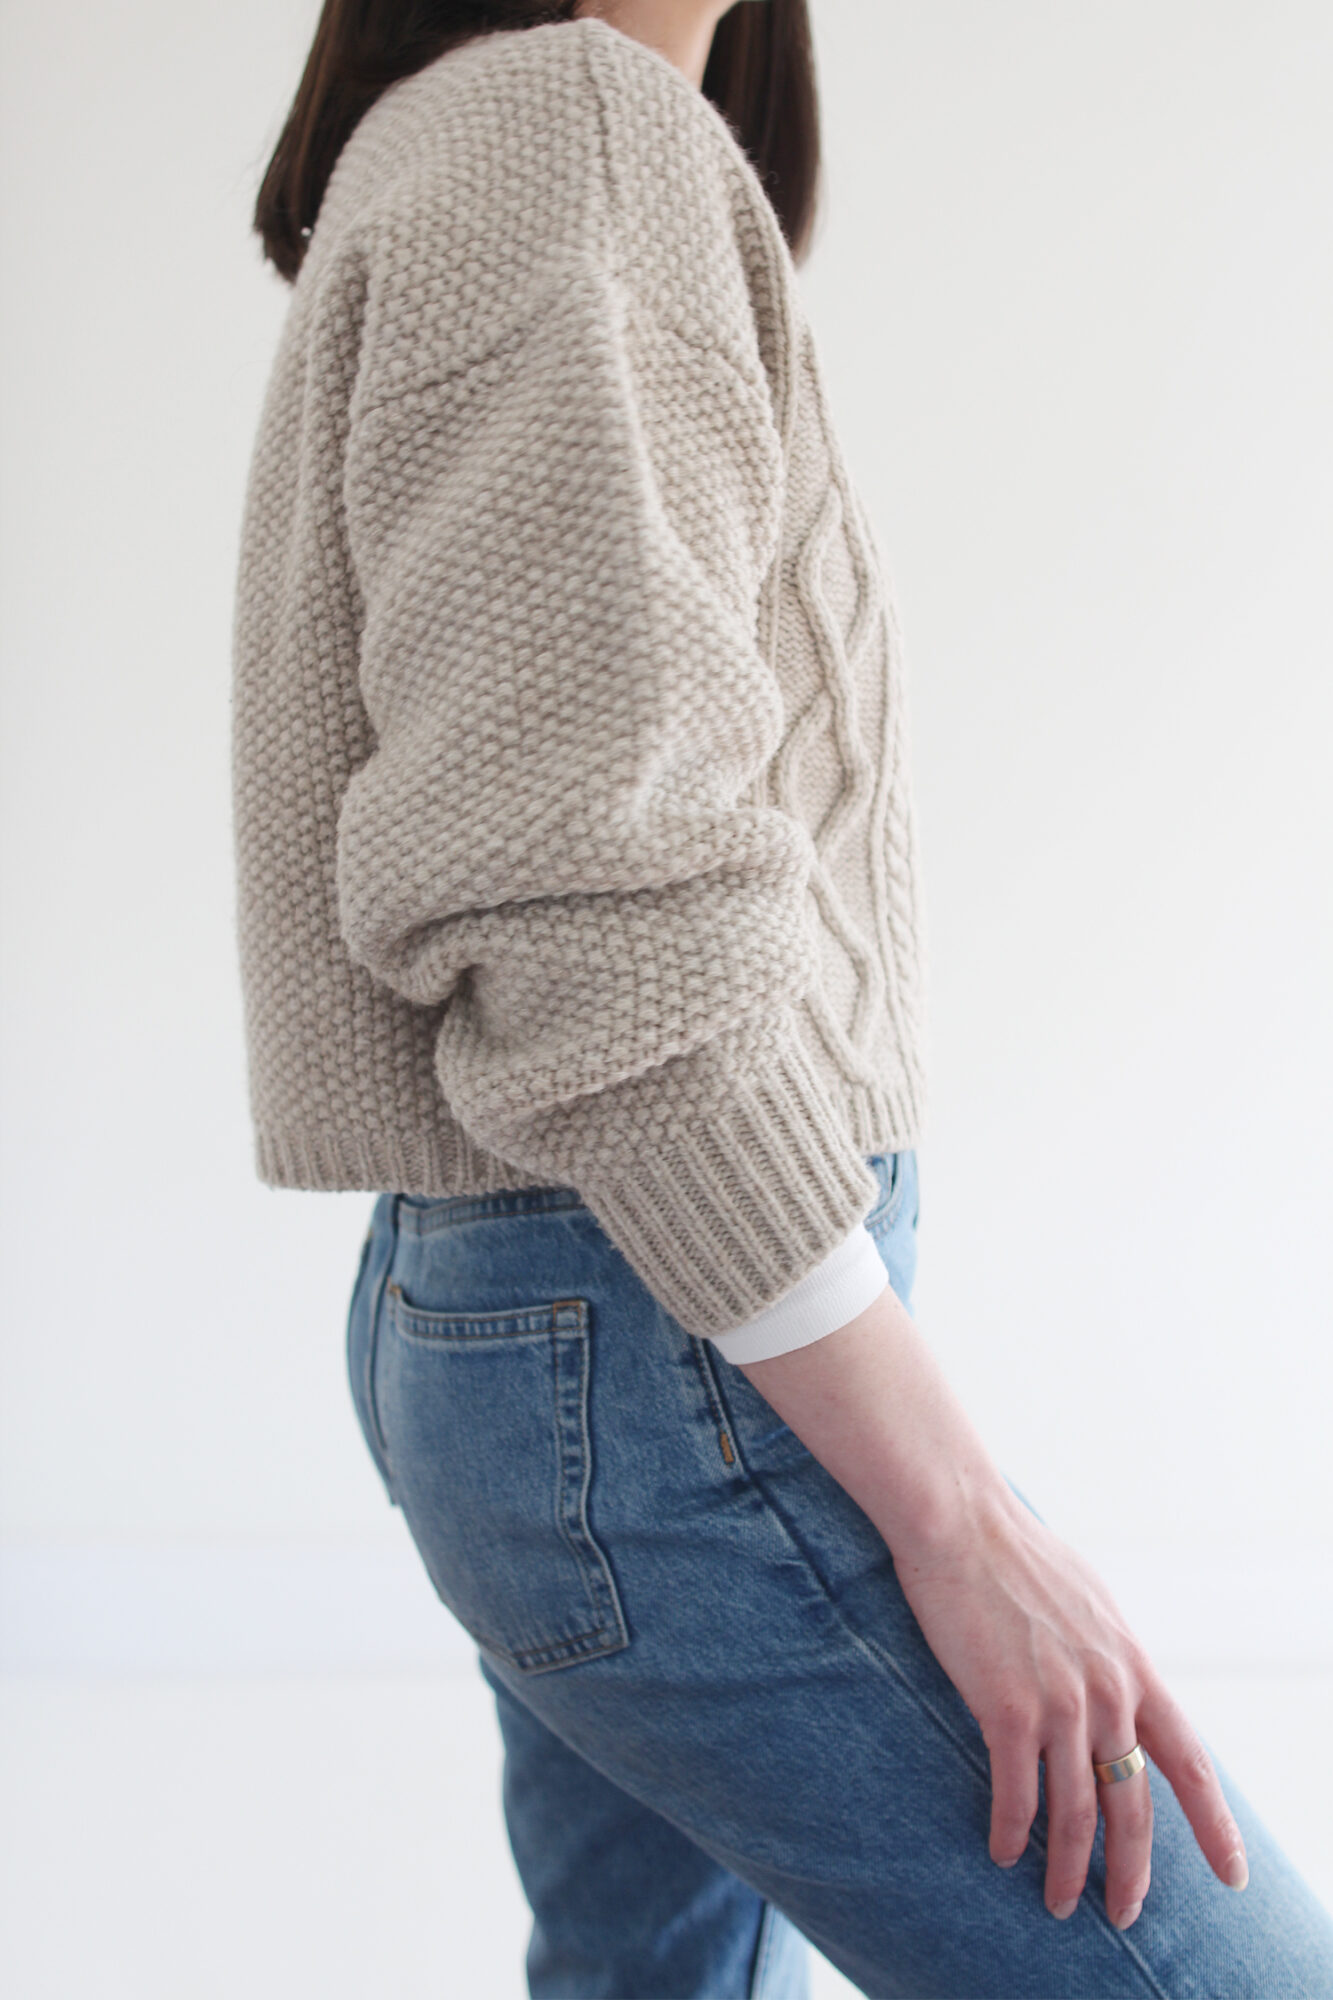 Woman wearing a beige cable knit sweater, vintage blue jeans, a tortoise headband and beige suede lug sole boots.